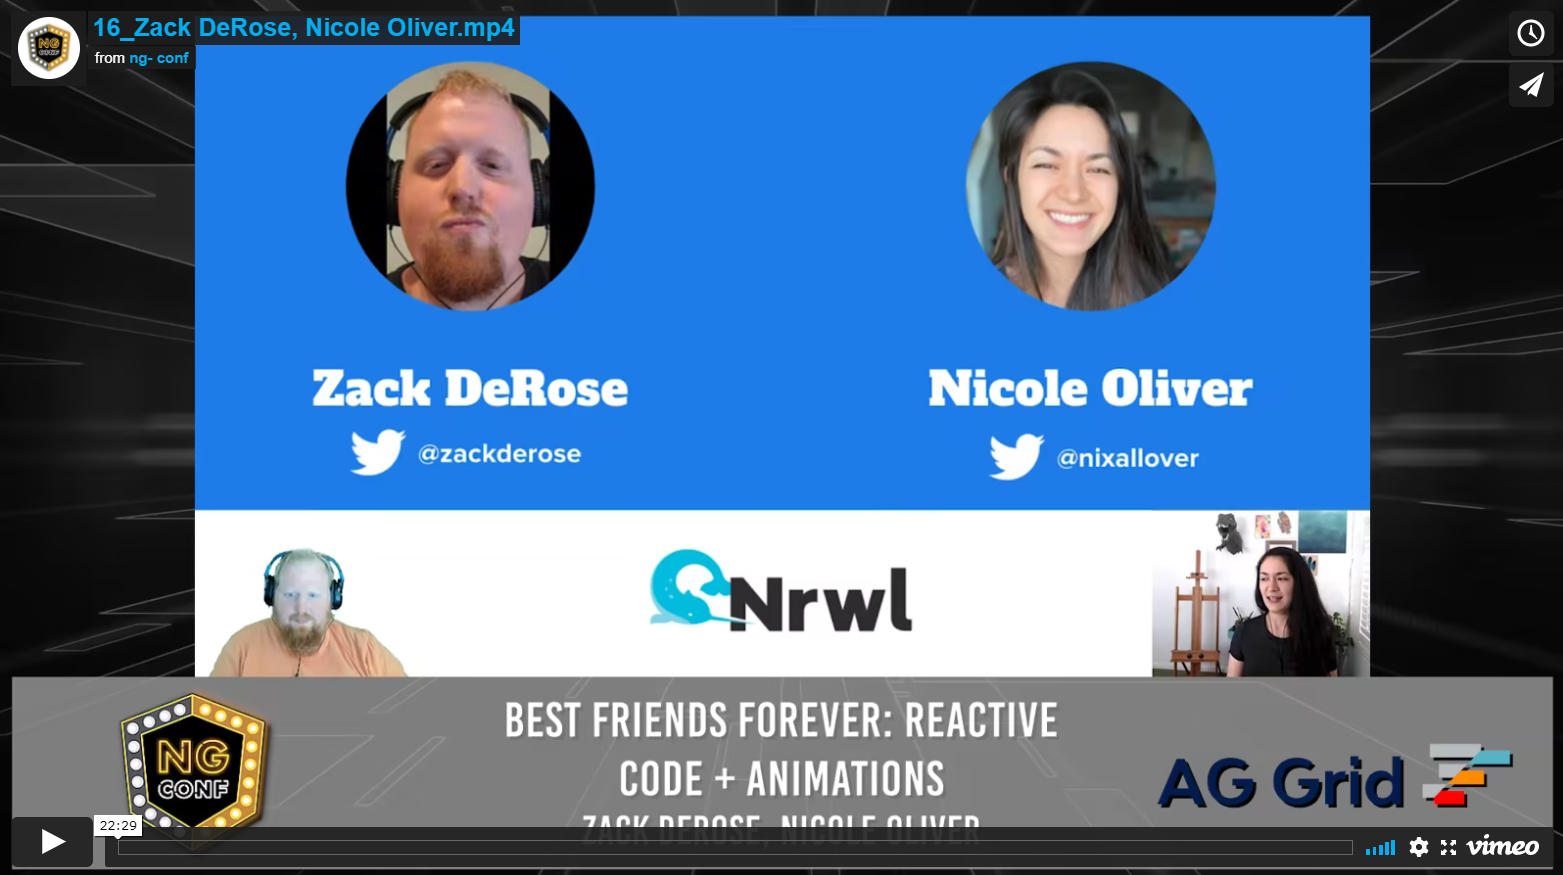 Best Friends Forever: Reactive Code + Animations